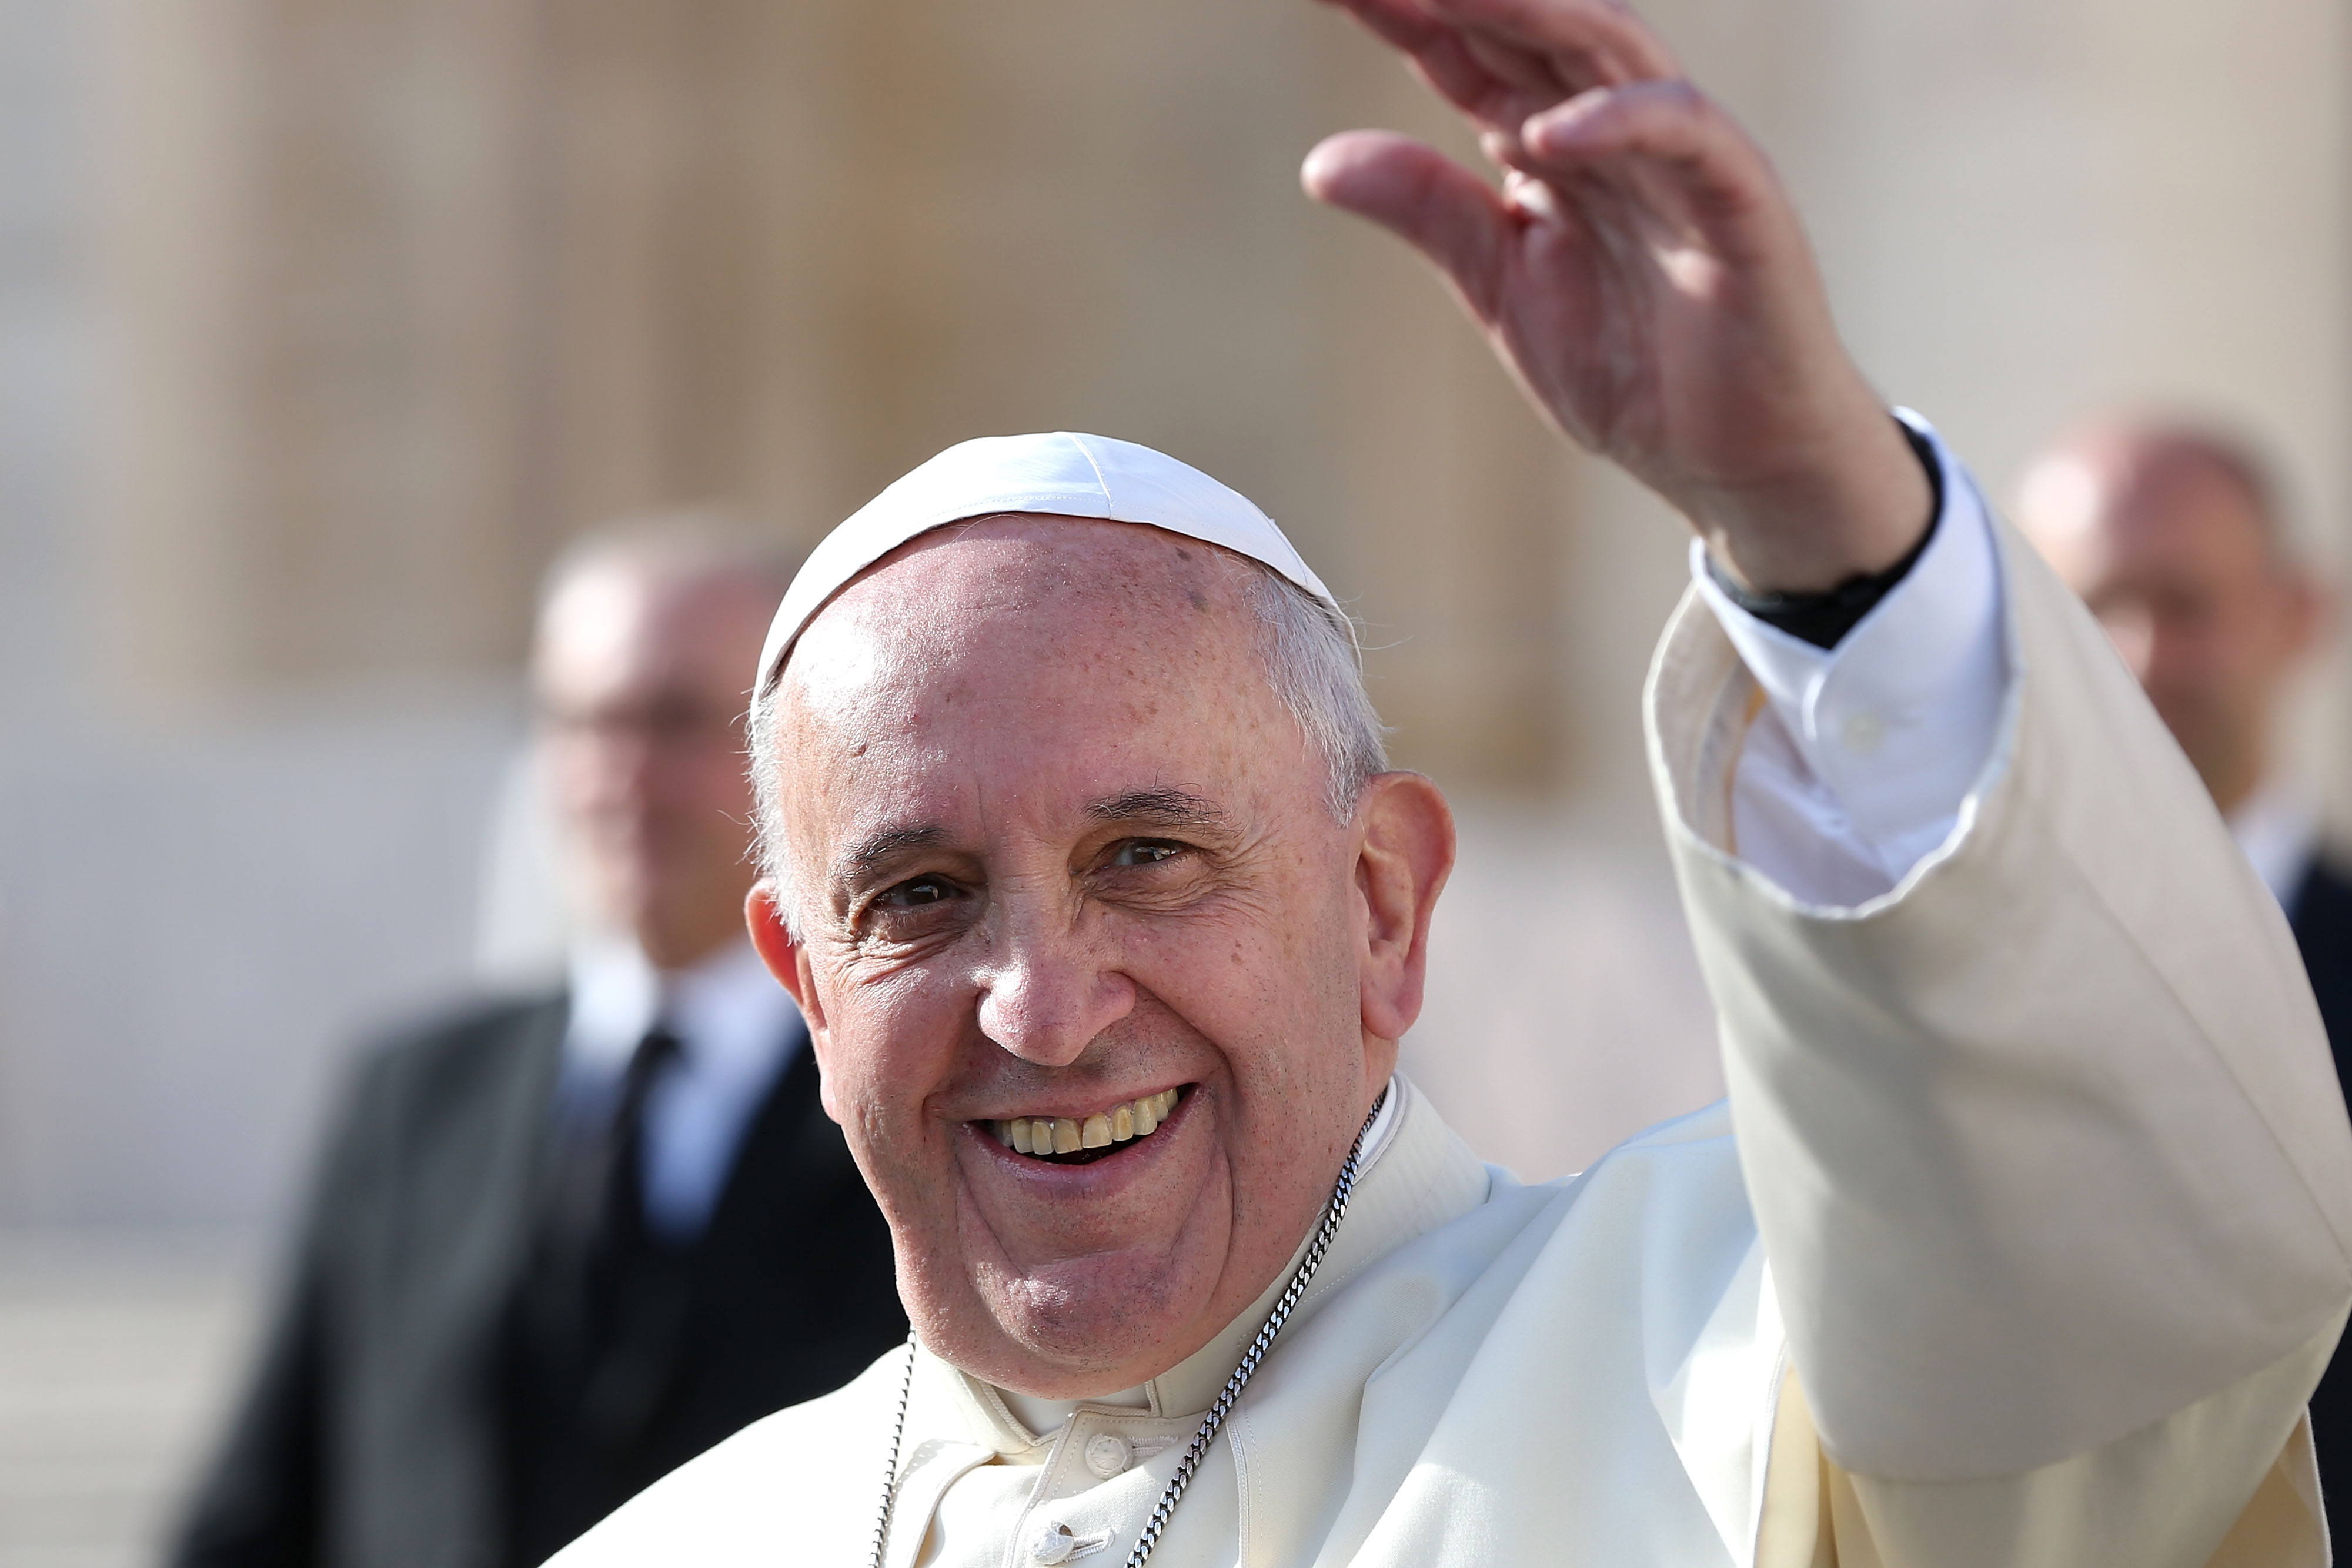 Pope Francis waves to the faithful as he leaves St. Peter's Square at the end of his weekly audience on Nov. 19, 2014, in Vatican City